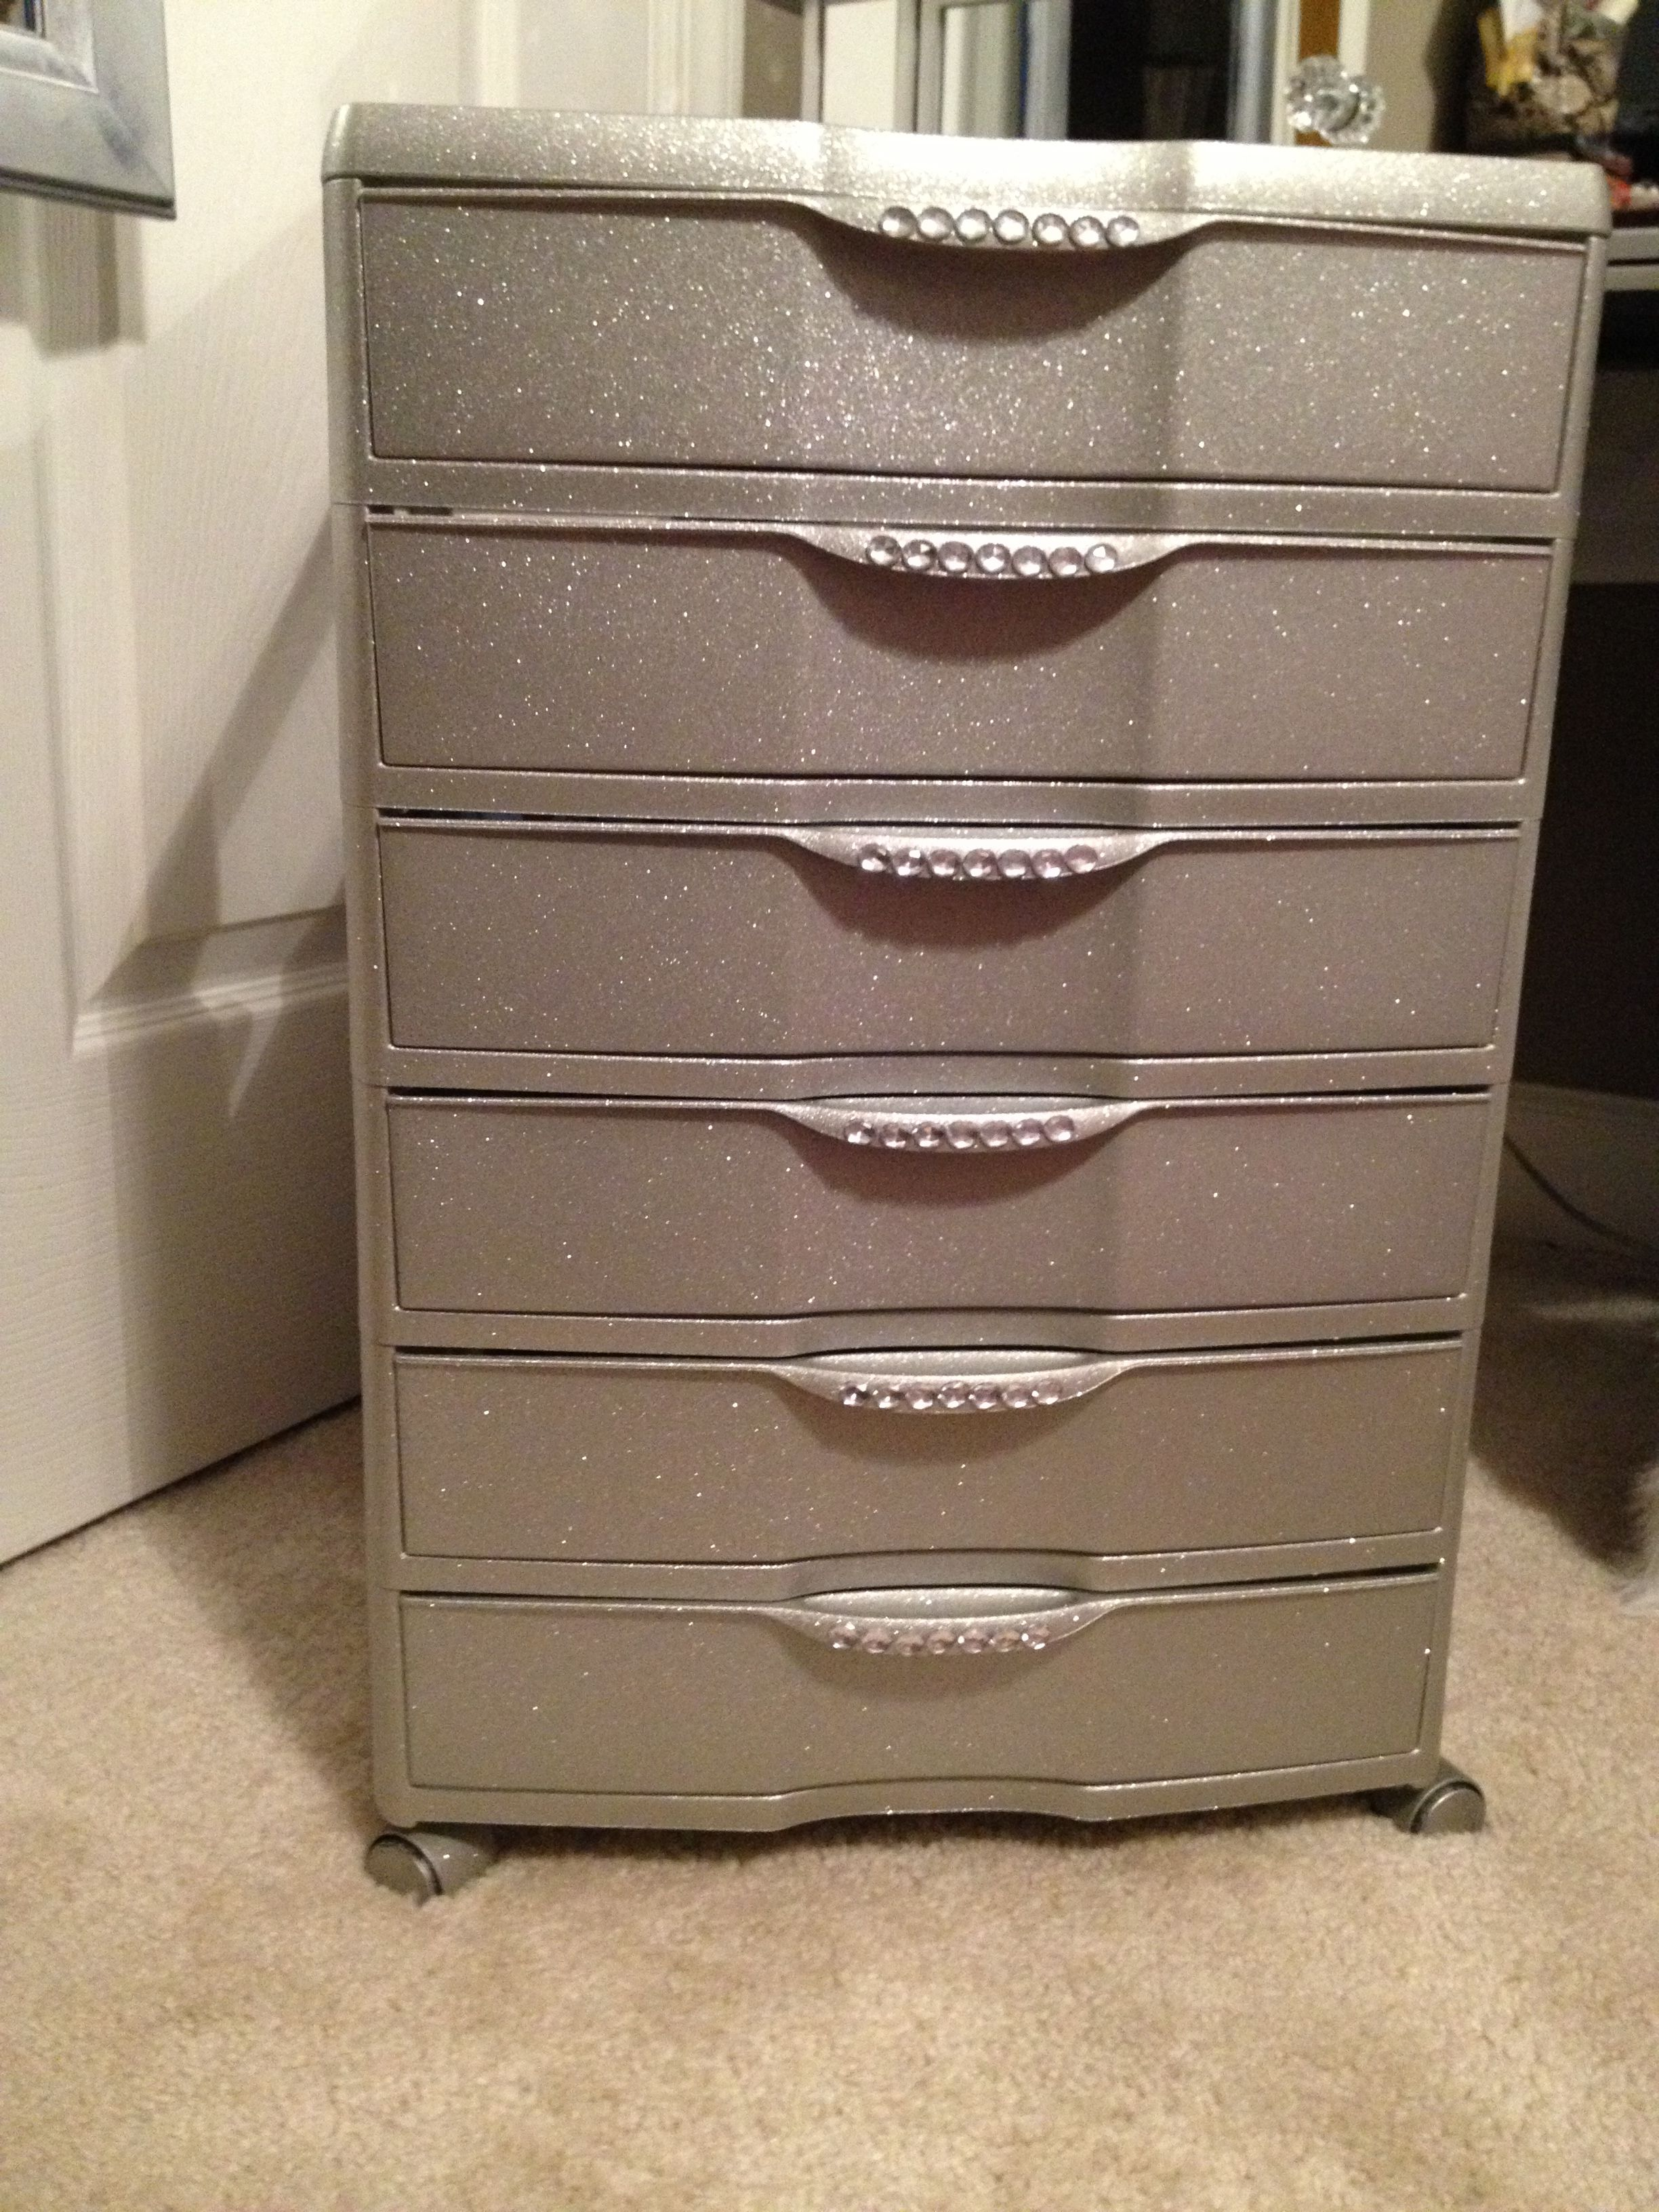 makeup organizer drawers walmart. paint plastic drawers to look nicer-plastic 6 drawer bin from walmart. spray , glitter and crystal stickers! great for makeup storage organizer walmart c